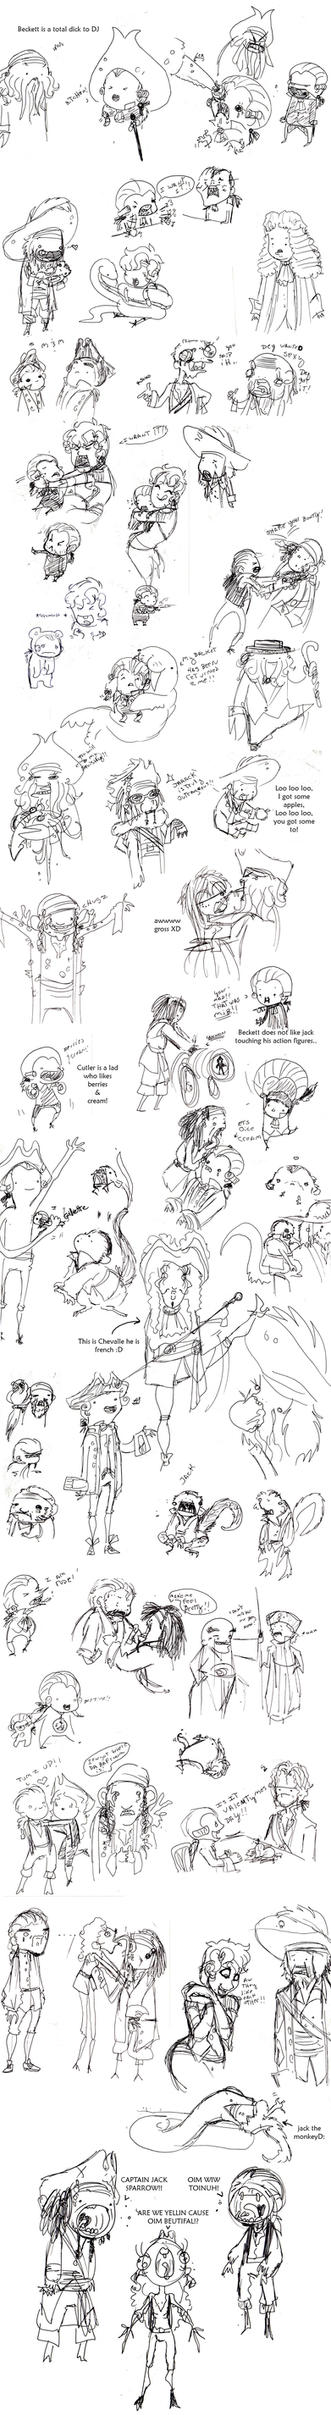 POTC AWE sketch dump 2 by OhSadface